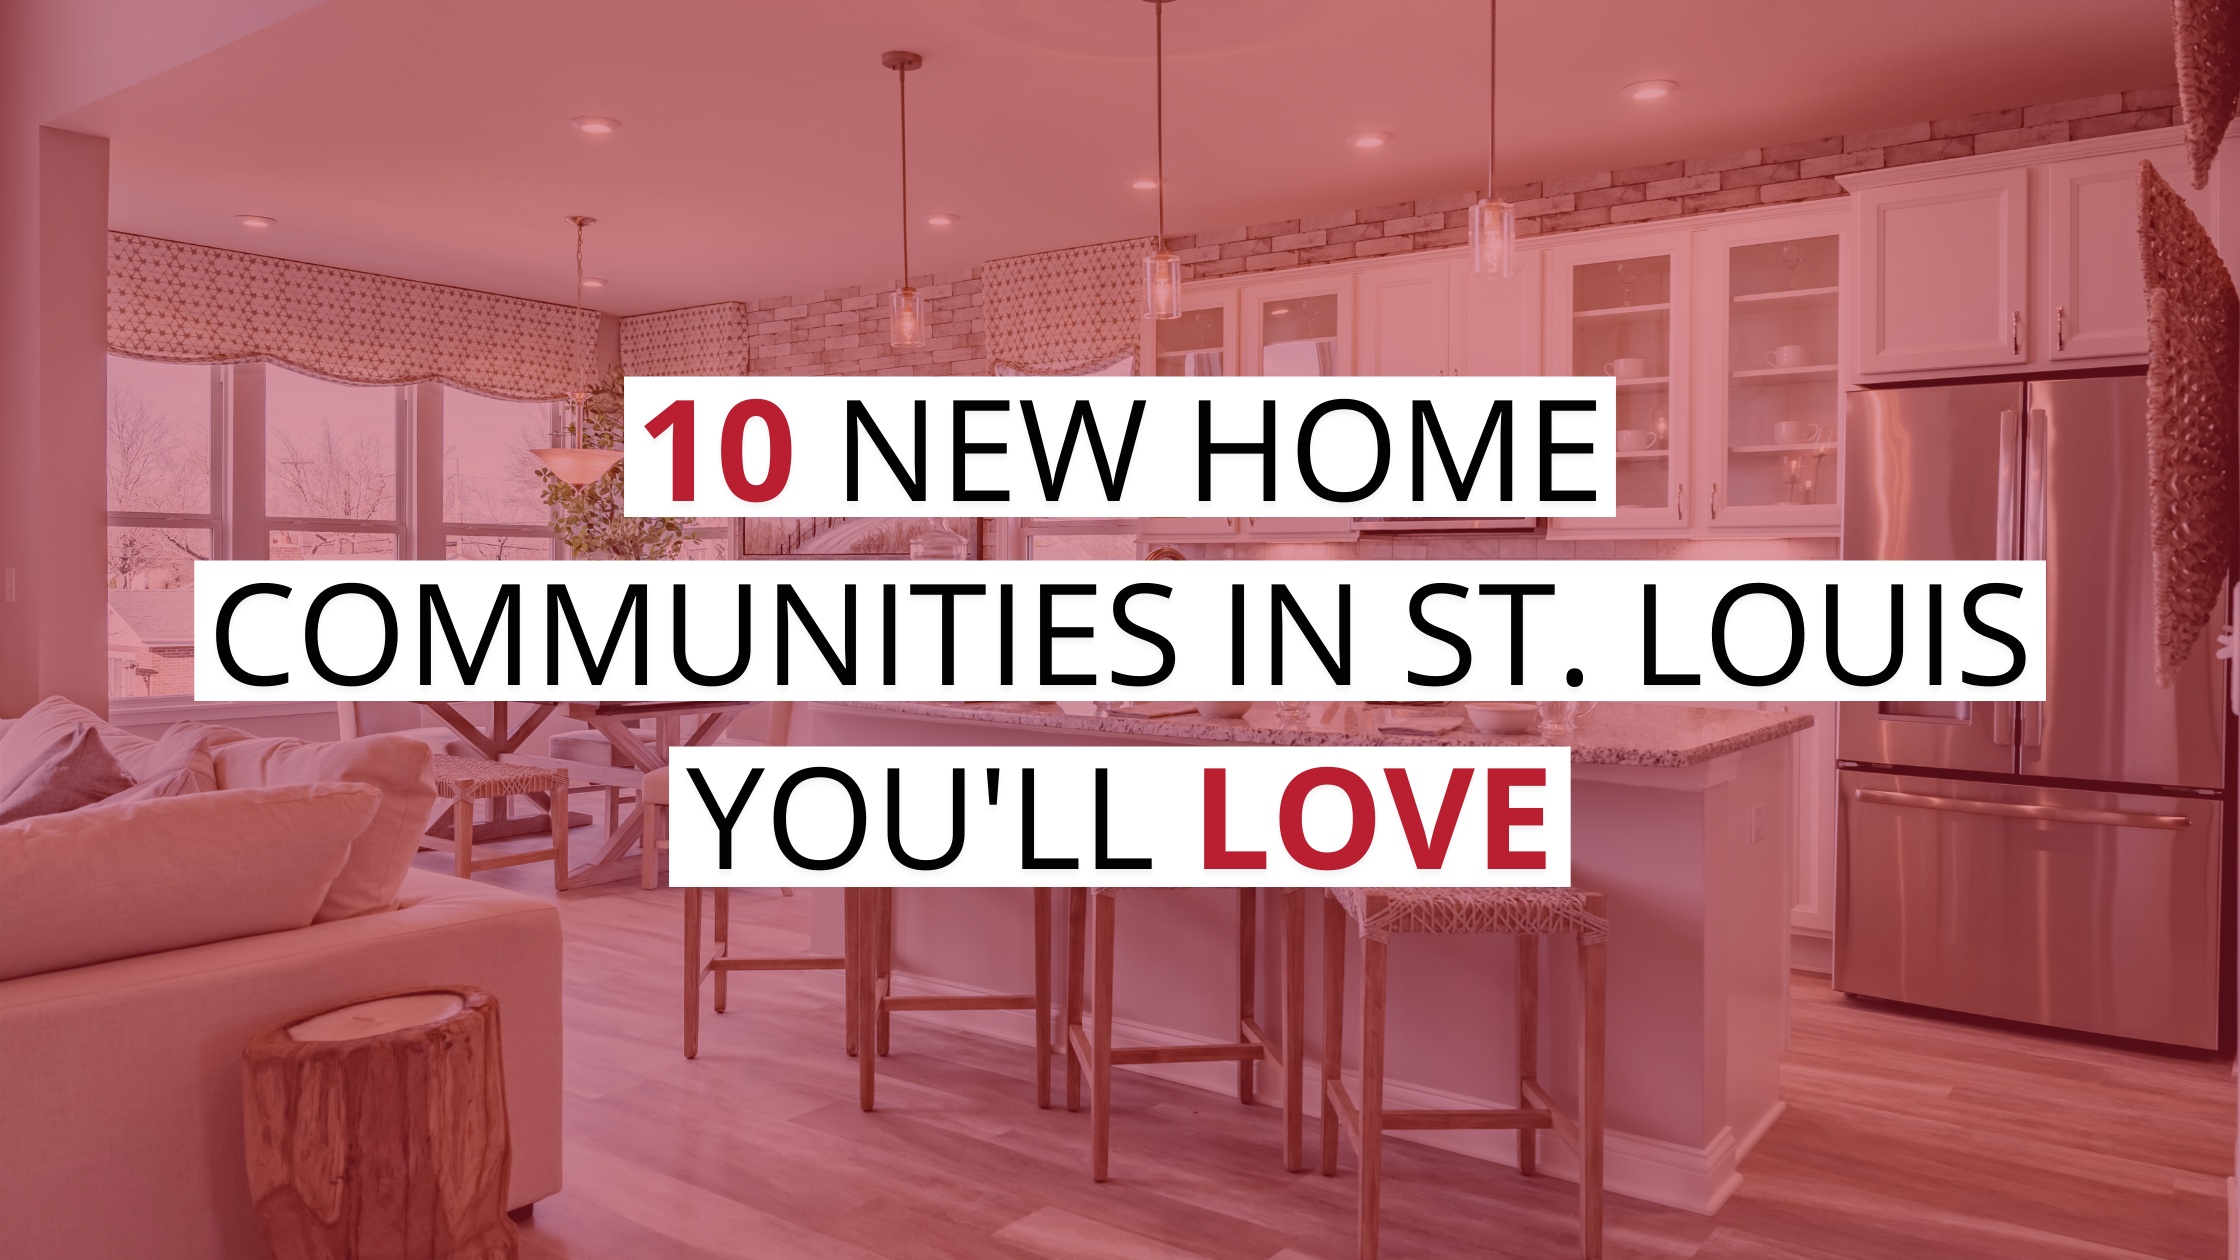 10 New Home Communities in St. Louis You'll Love